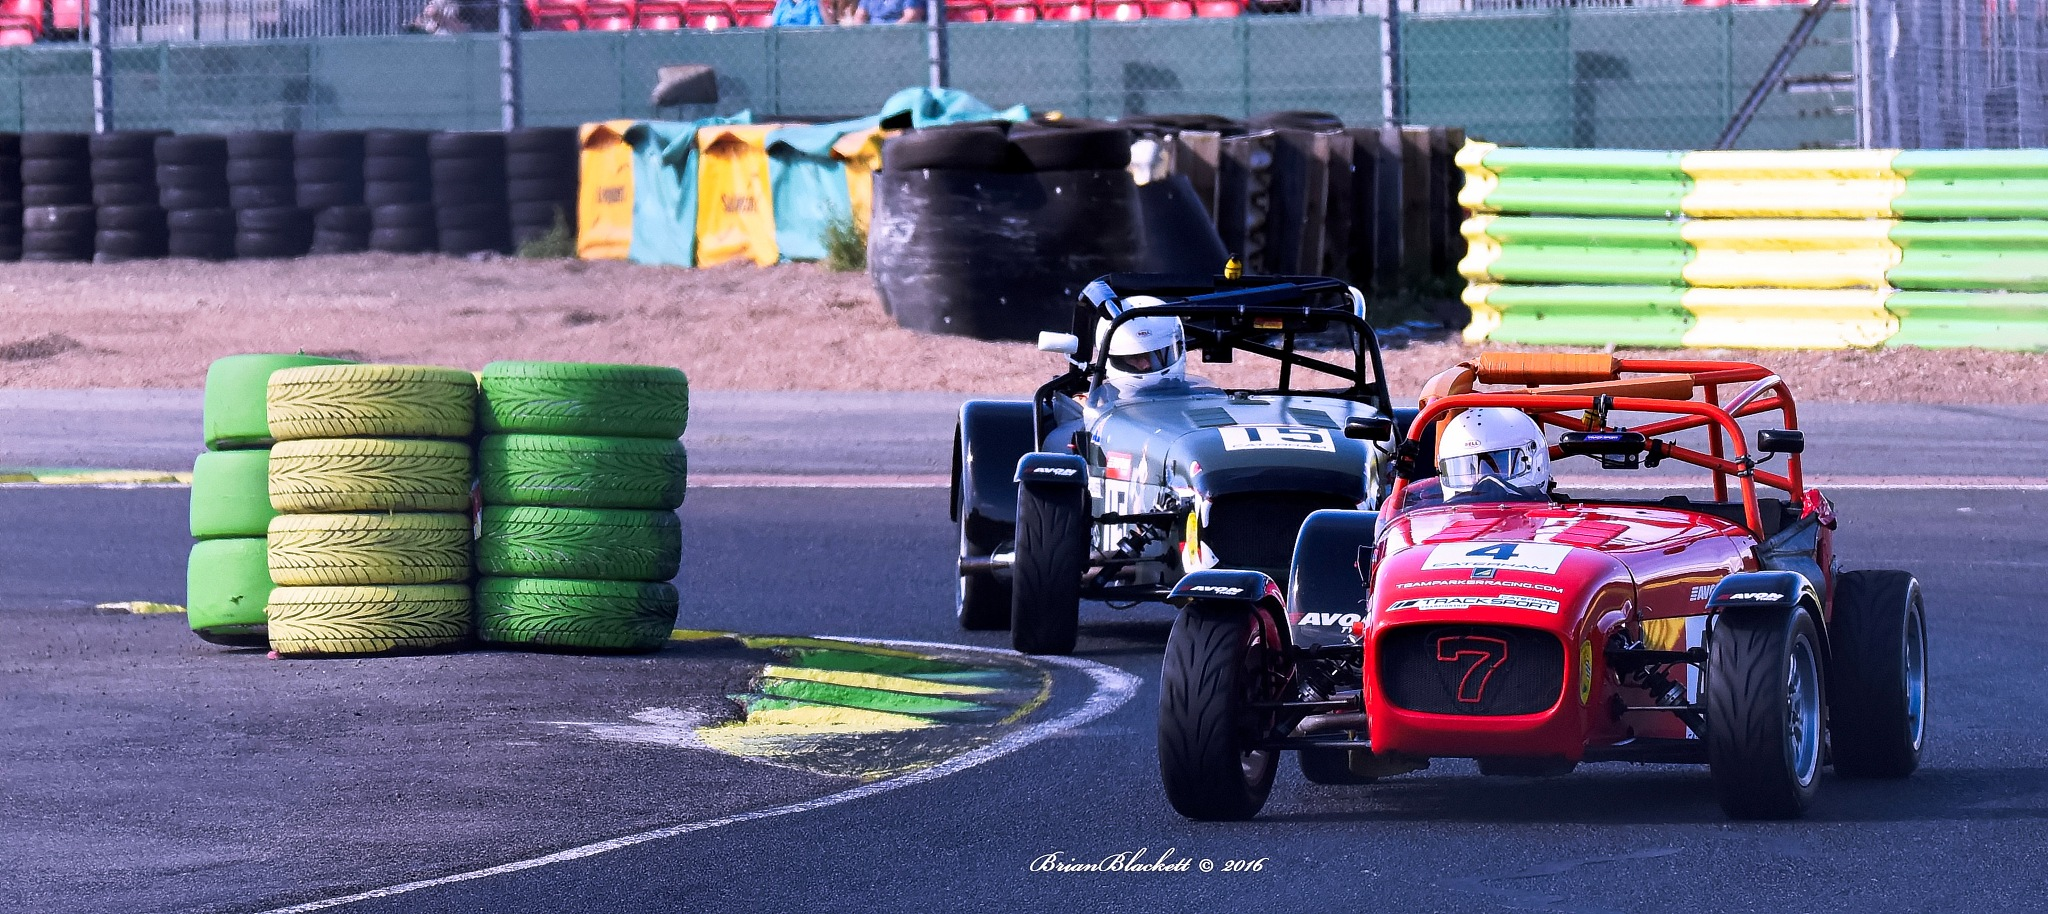 Caterham Racing Croft Circuit 2016 by brianblackett